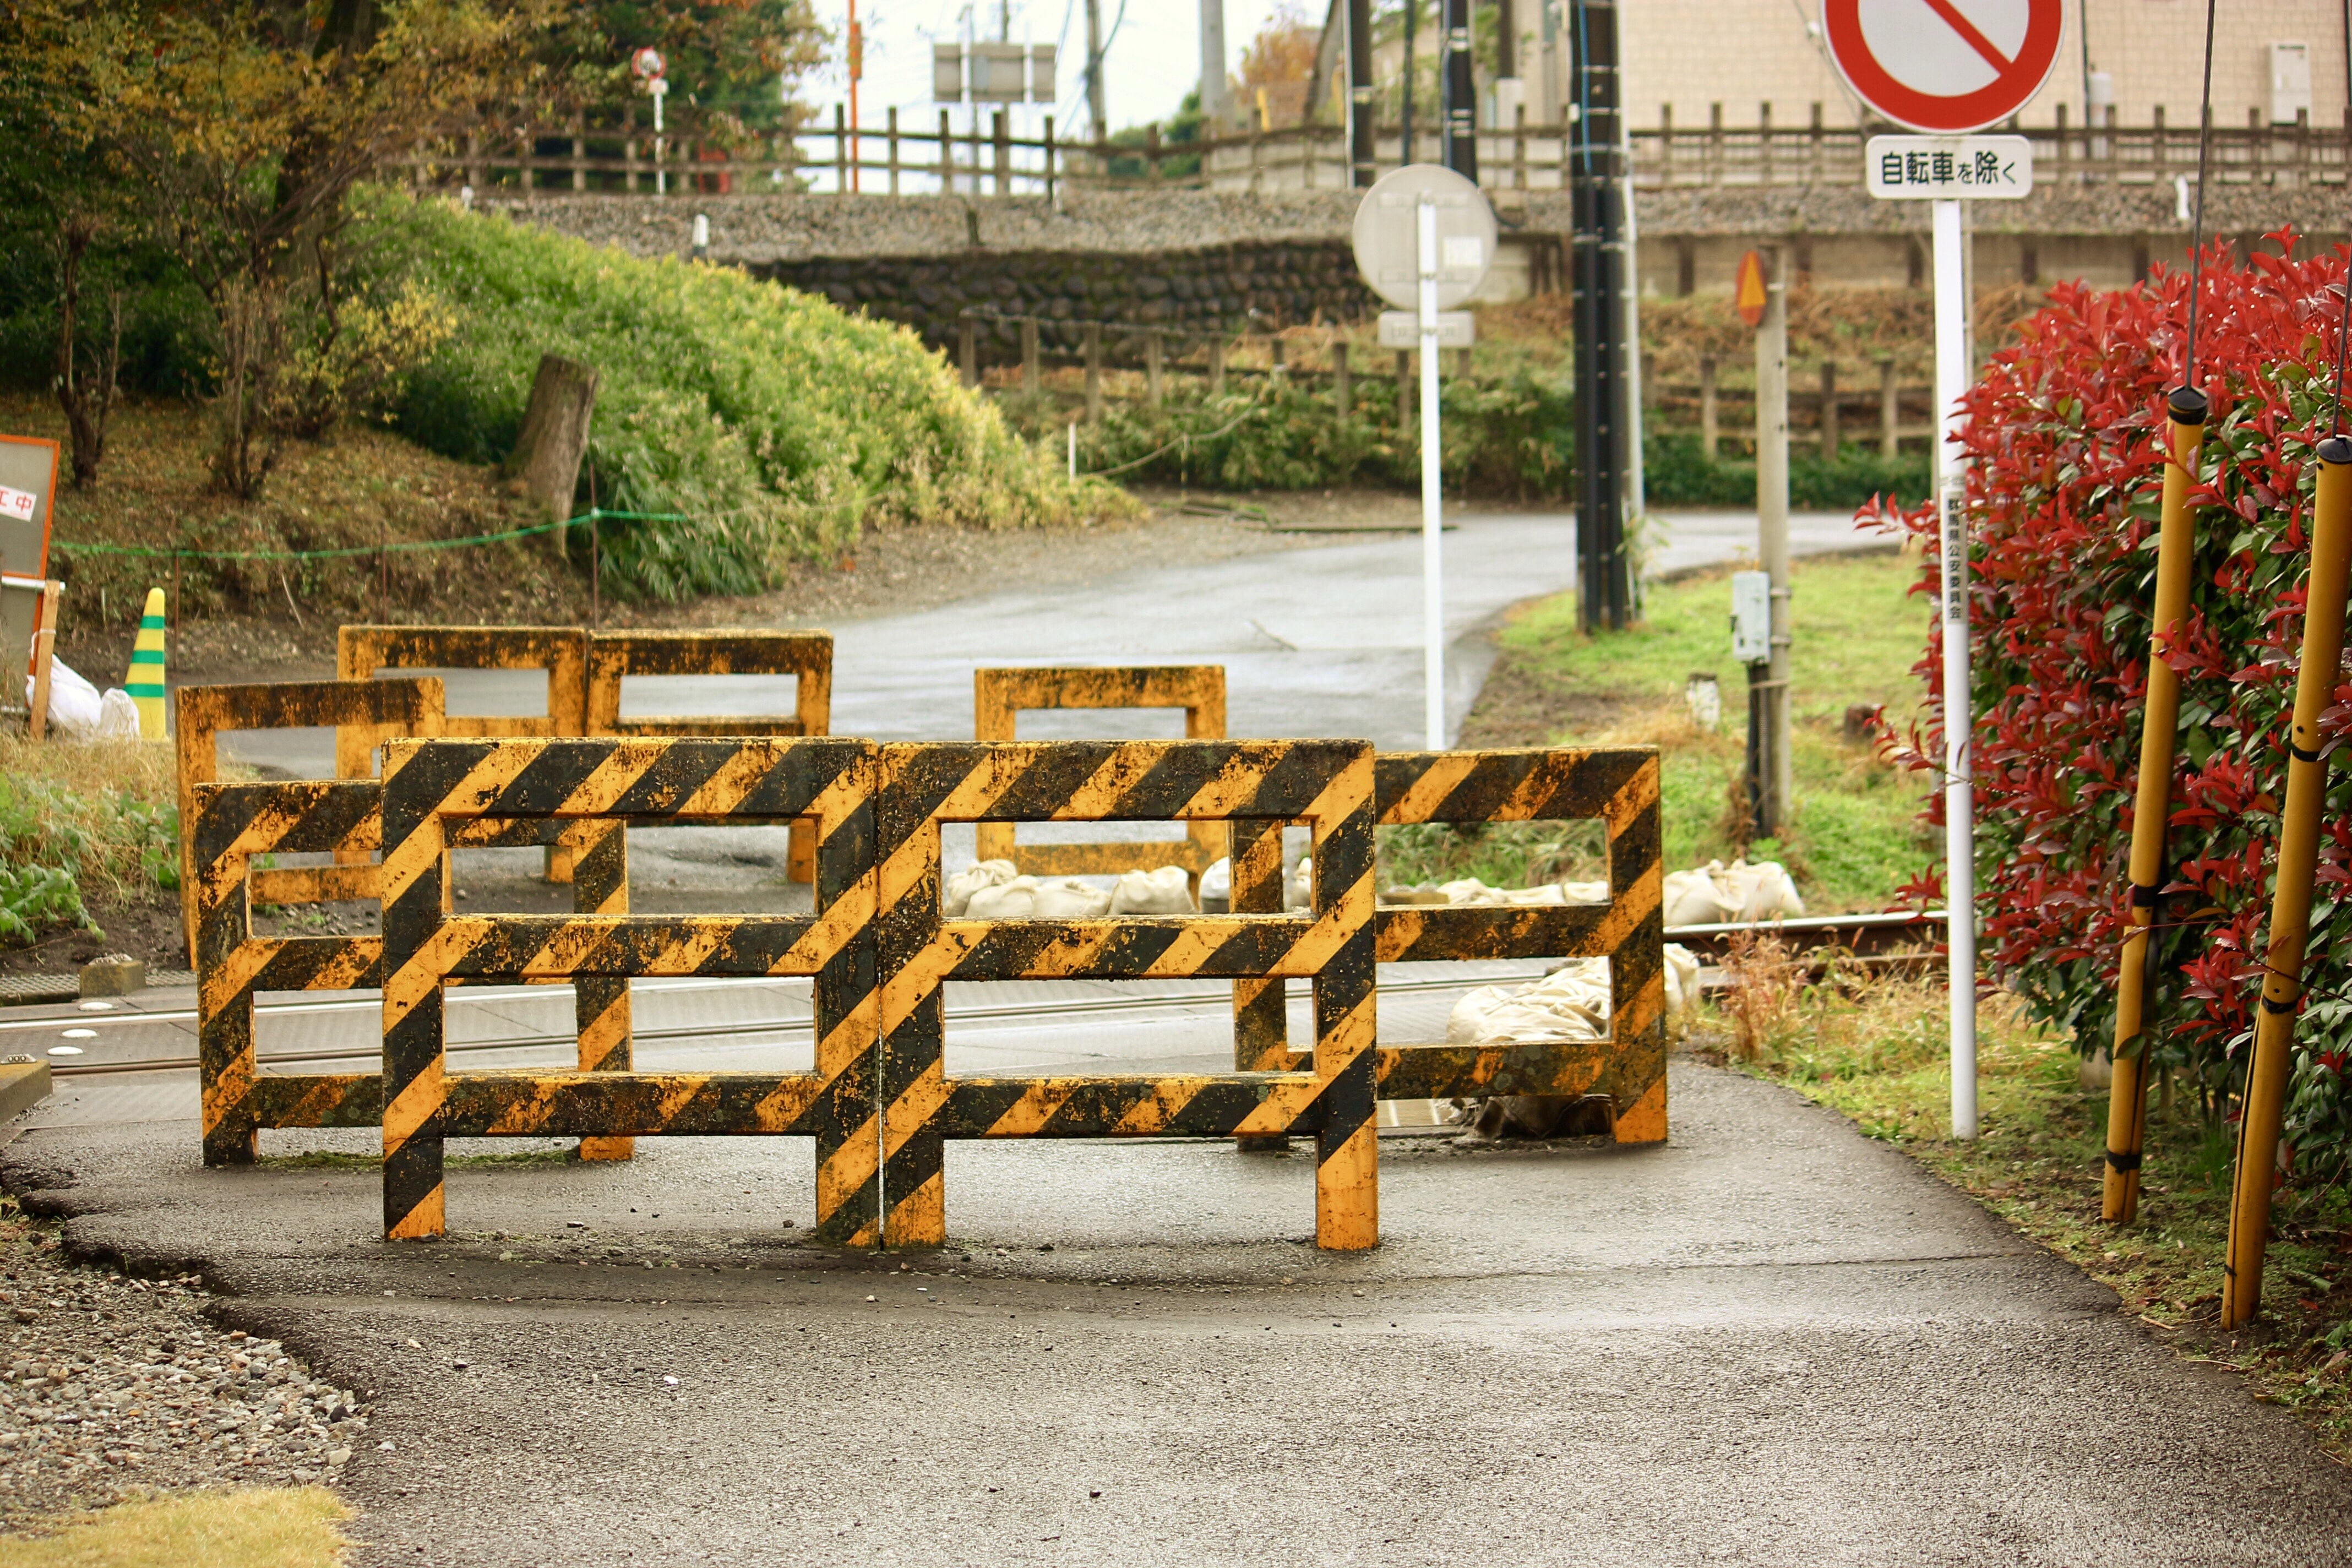 yellow-and-black wooden road barricades